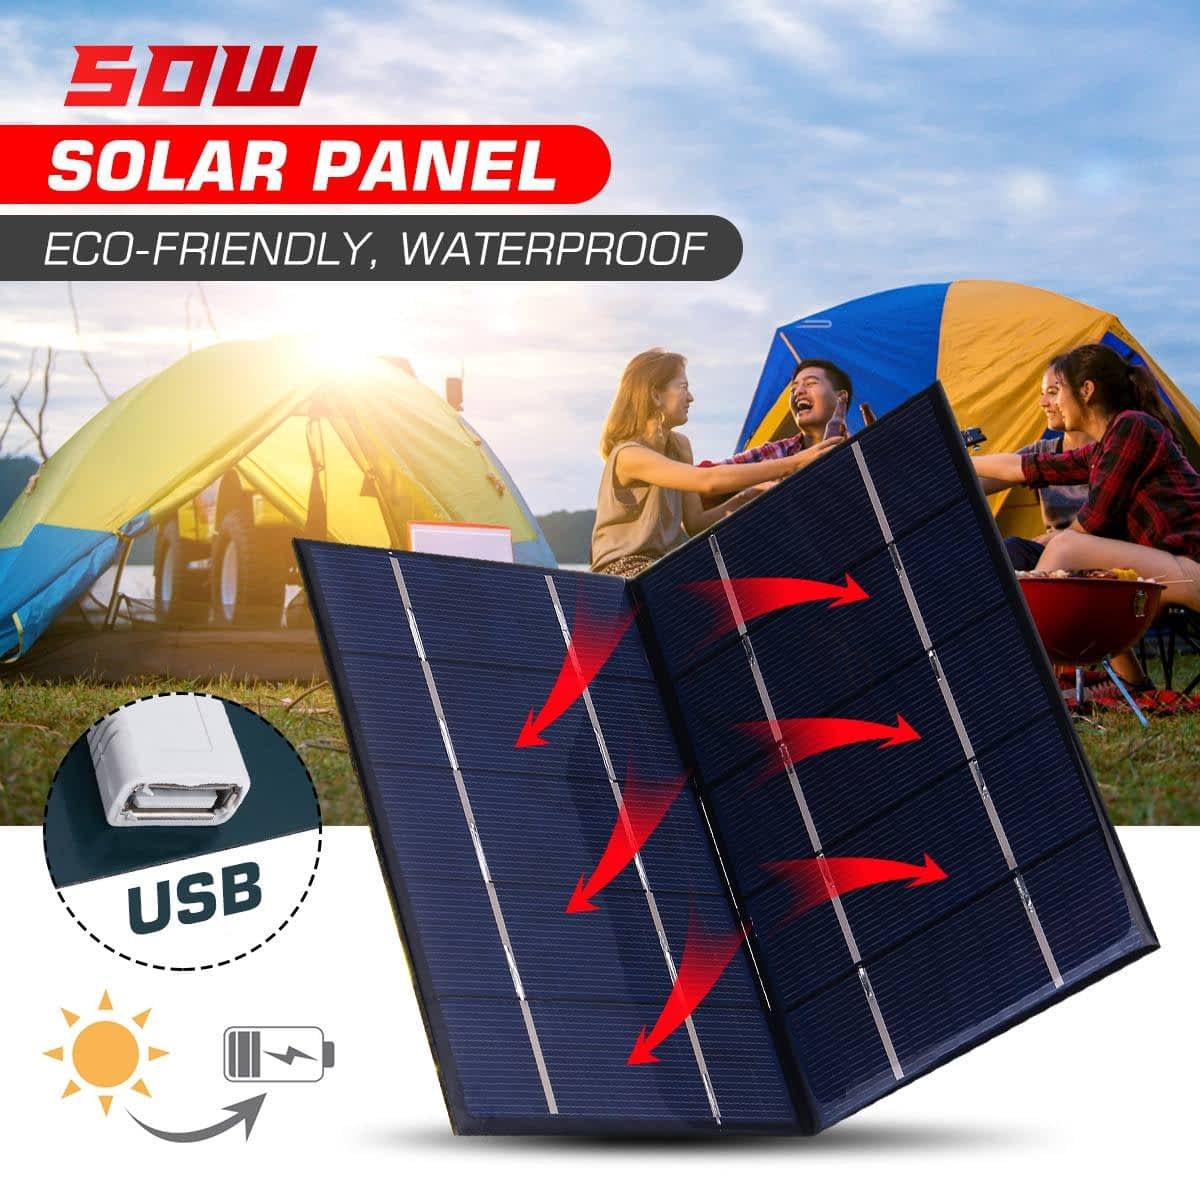 50W-Solar-Panels-Folding-Waterproof-Sun-Power-Solar-Cells-Charger-5V-USB-Output-Devices-Portable-for-2.jpeg